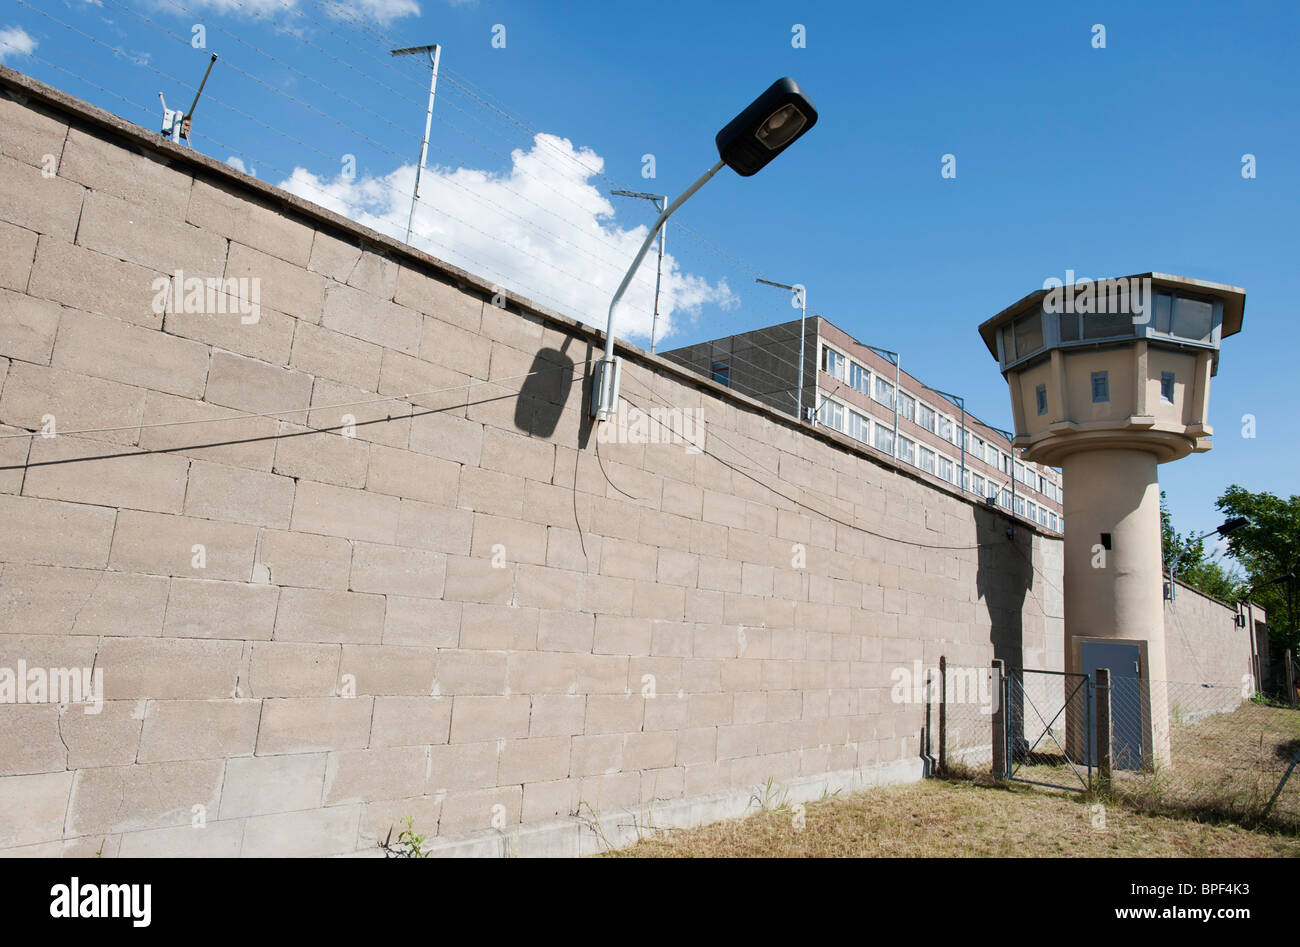 Wall and guard tower at former East German state secret security police or STASI prison at Hohenschönhausen - Stock Image